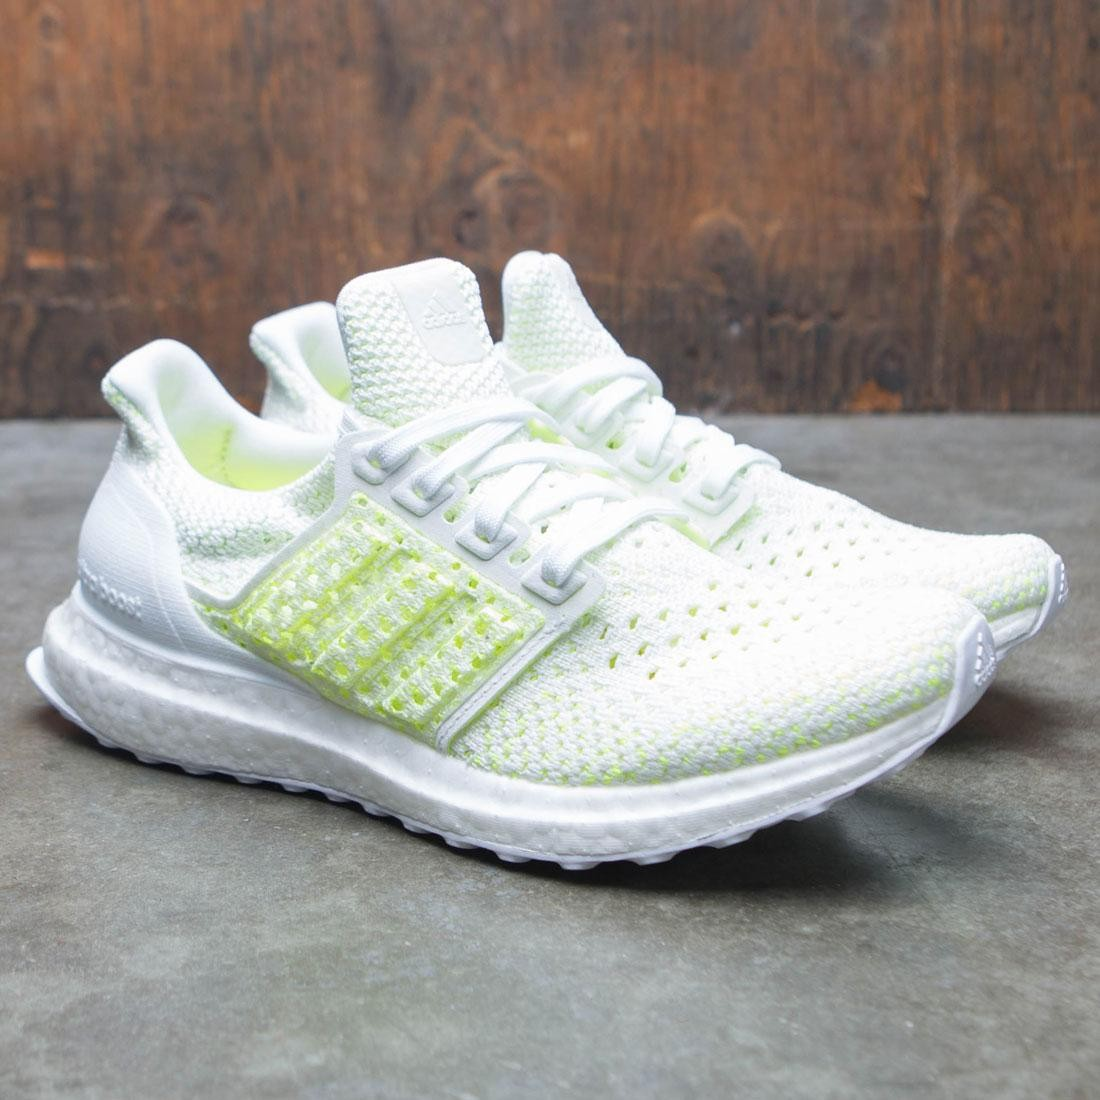 e5c39e8e117fb Adidas Big Kids UltraBOOST Clima J (white   footwear white   shock yellow)